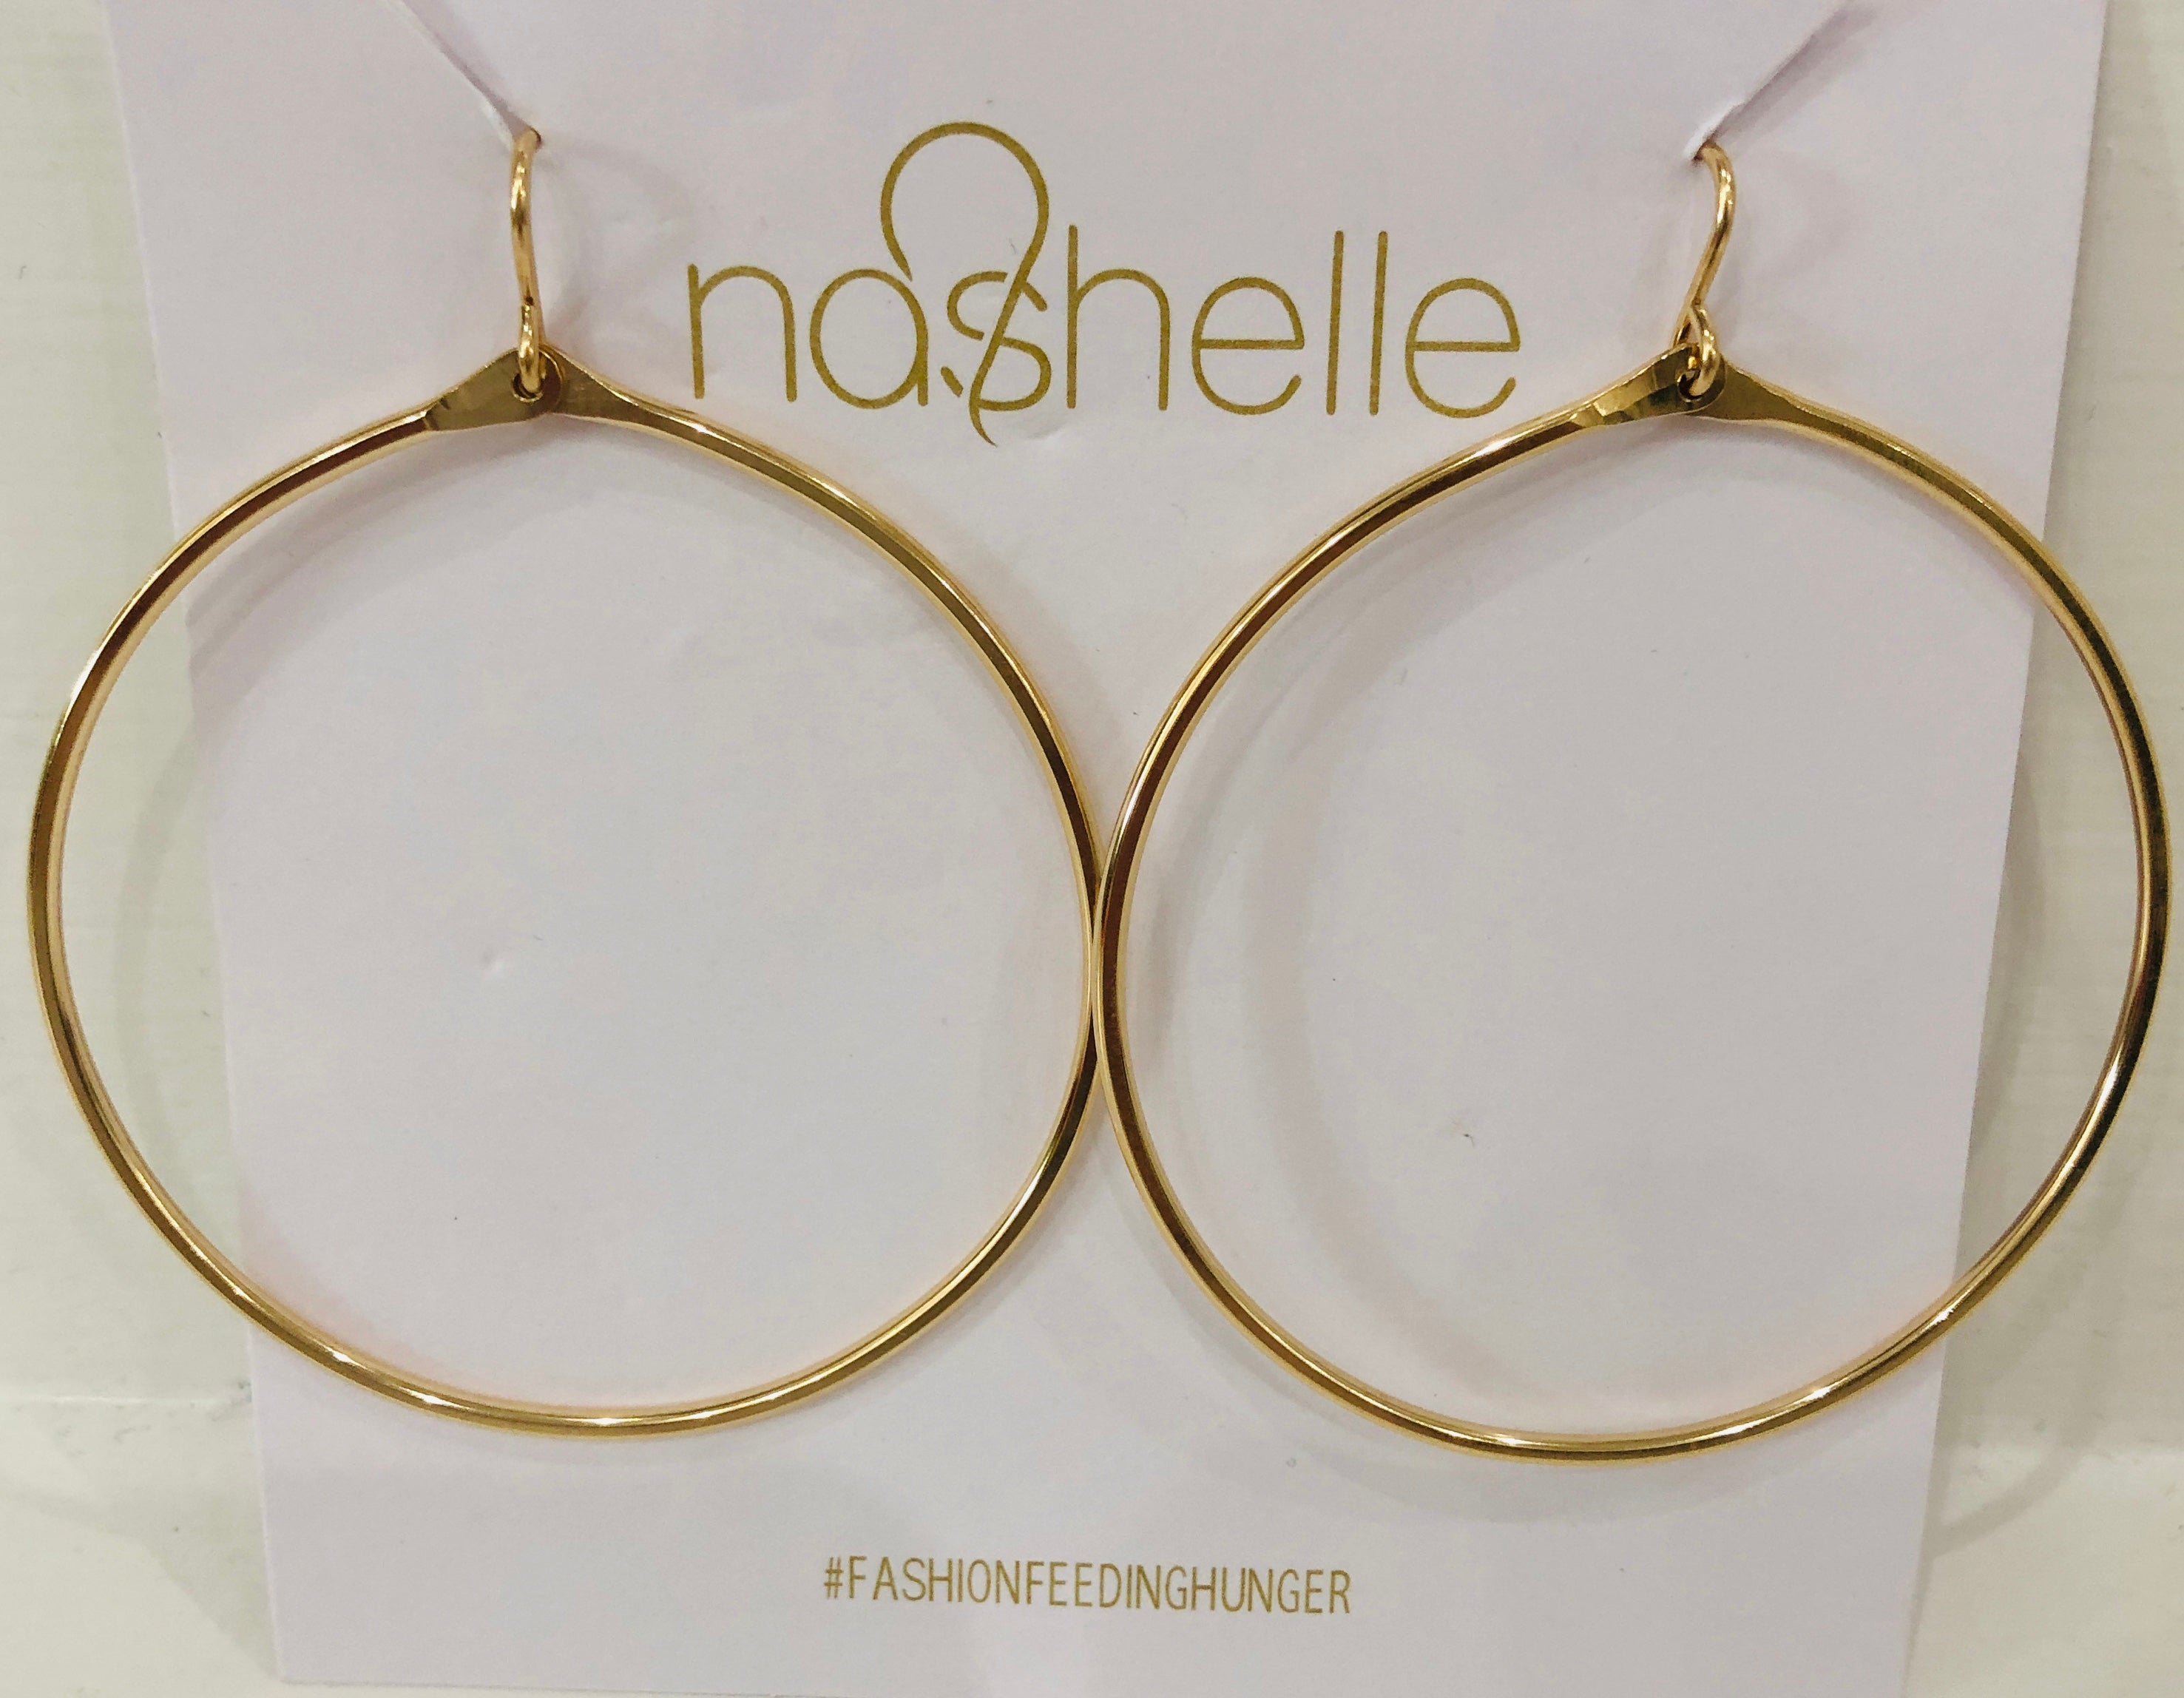 nashelle 14K Gold Dipped Large Hoops